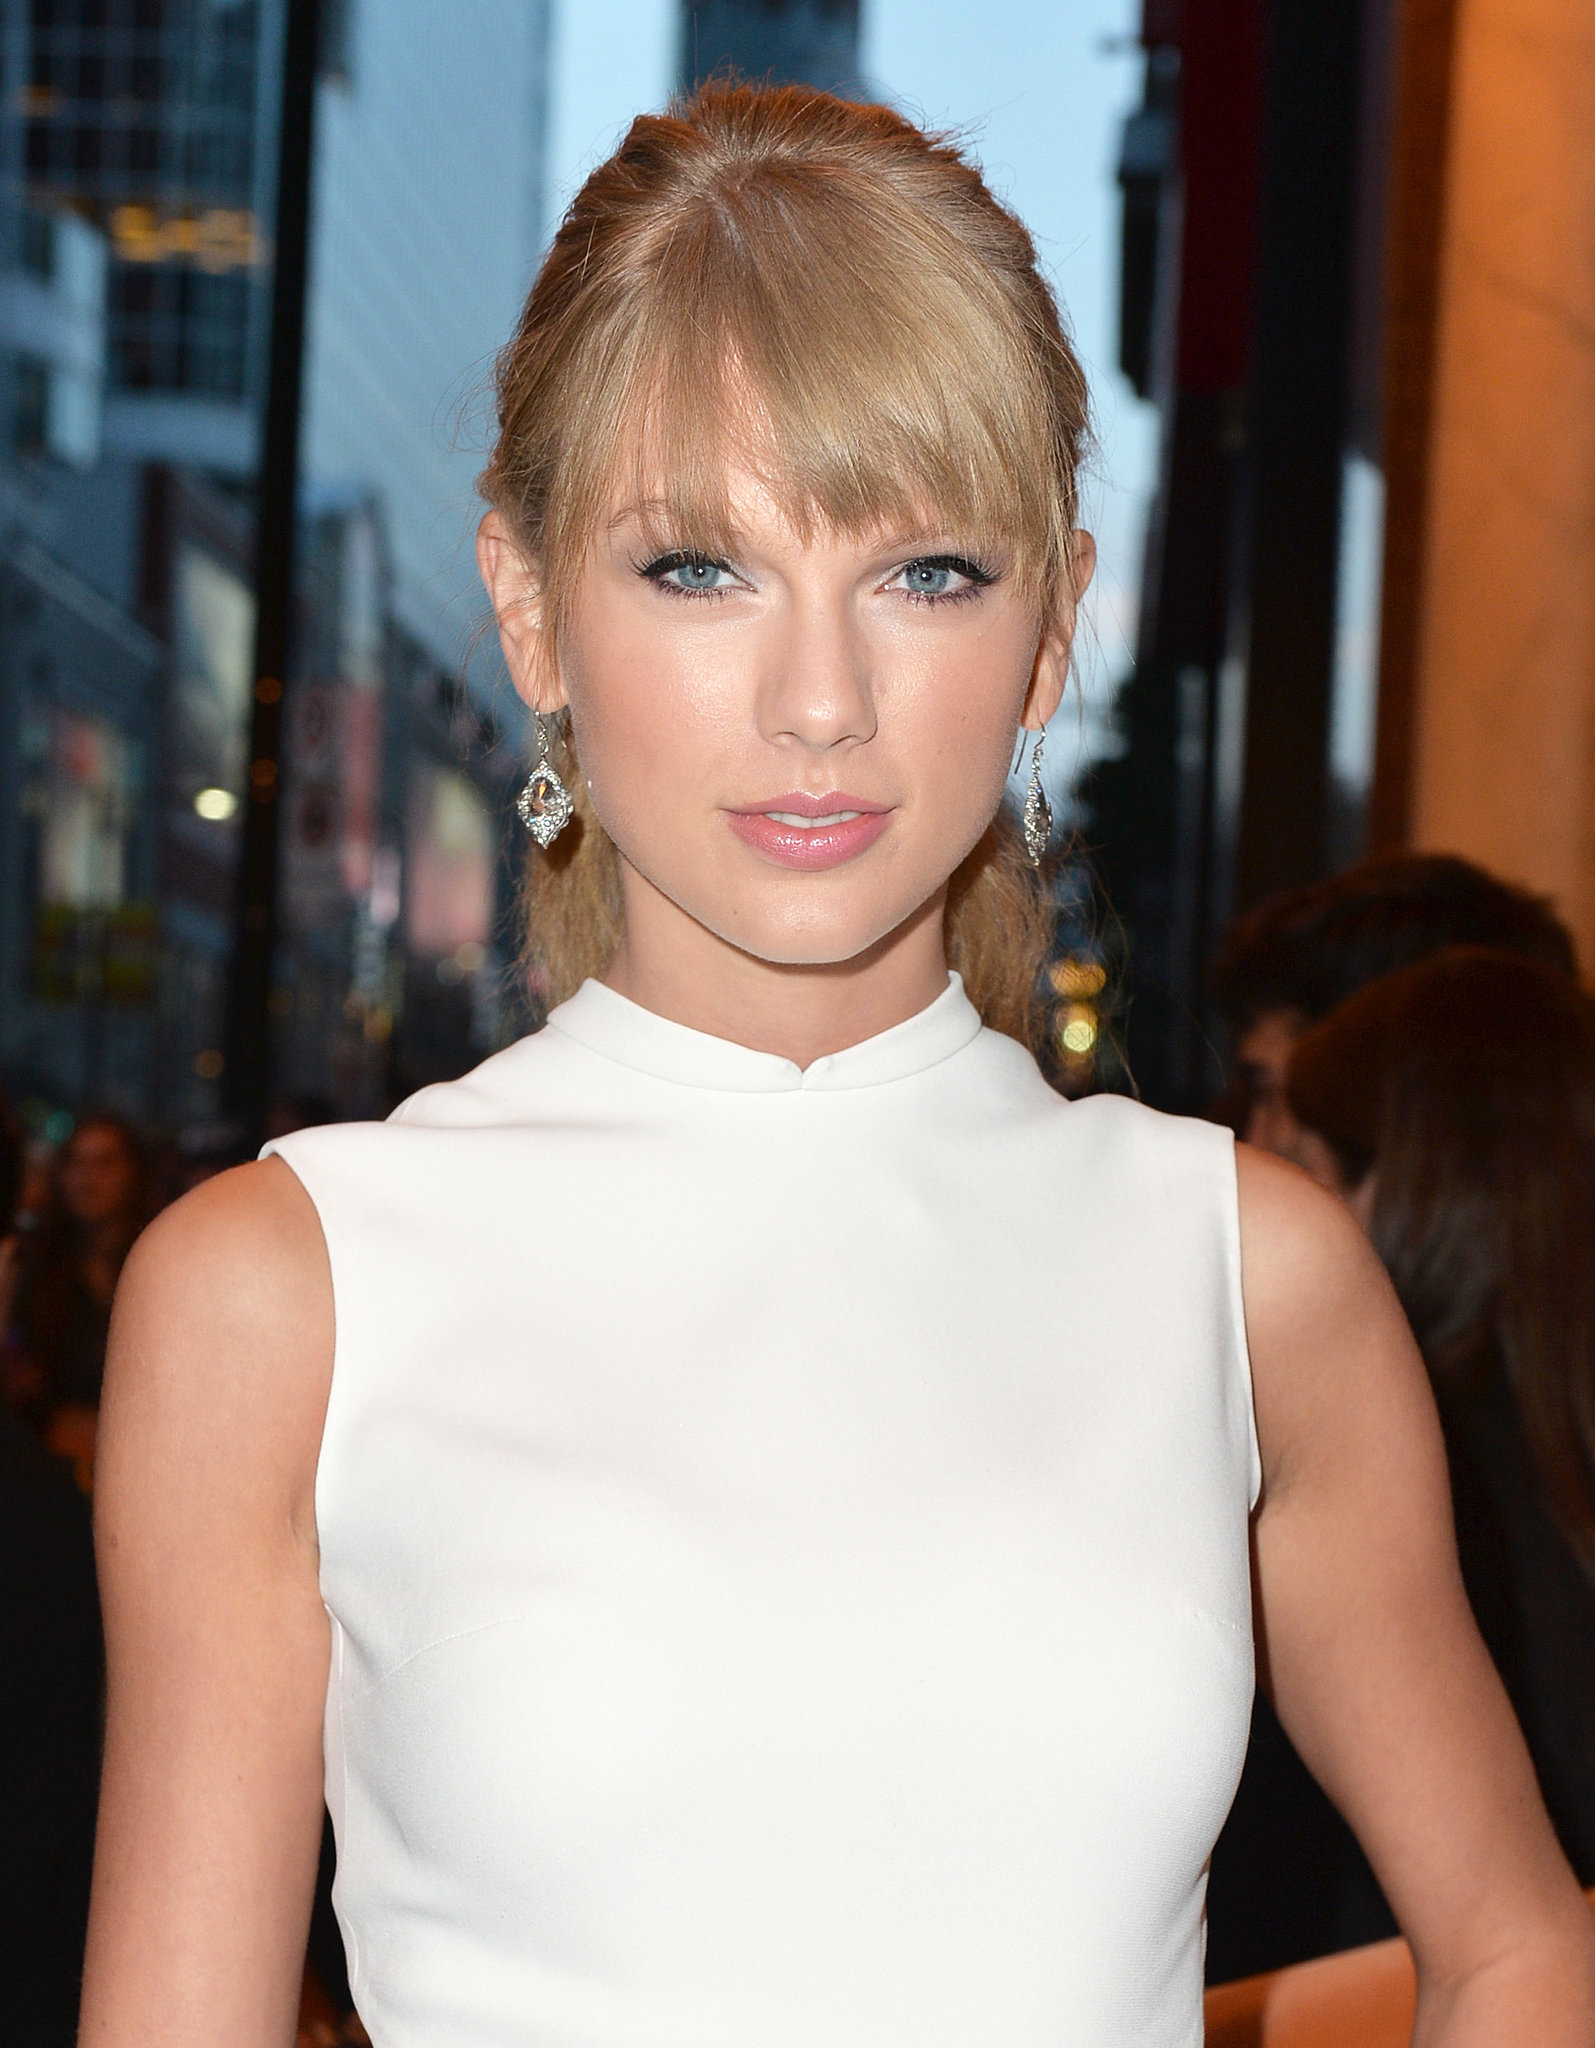 Taylor Swift arrived at the One Chance premiere with her hair pulled back into a ponytail and her bangs framing her face.